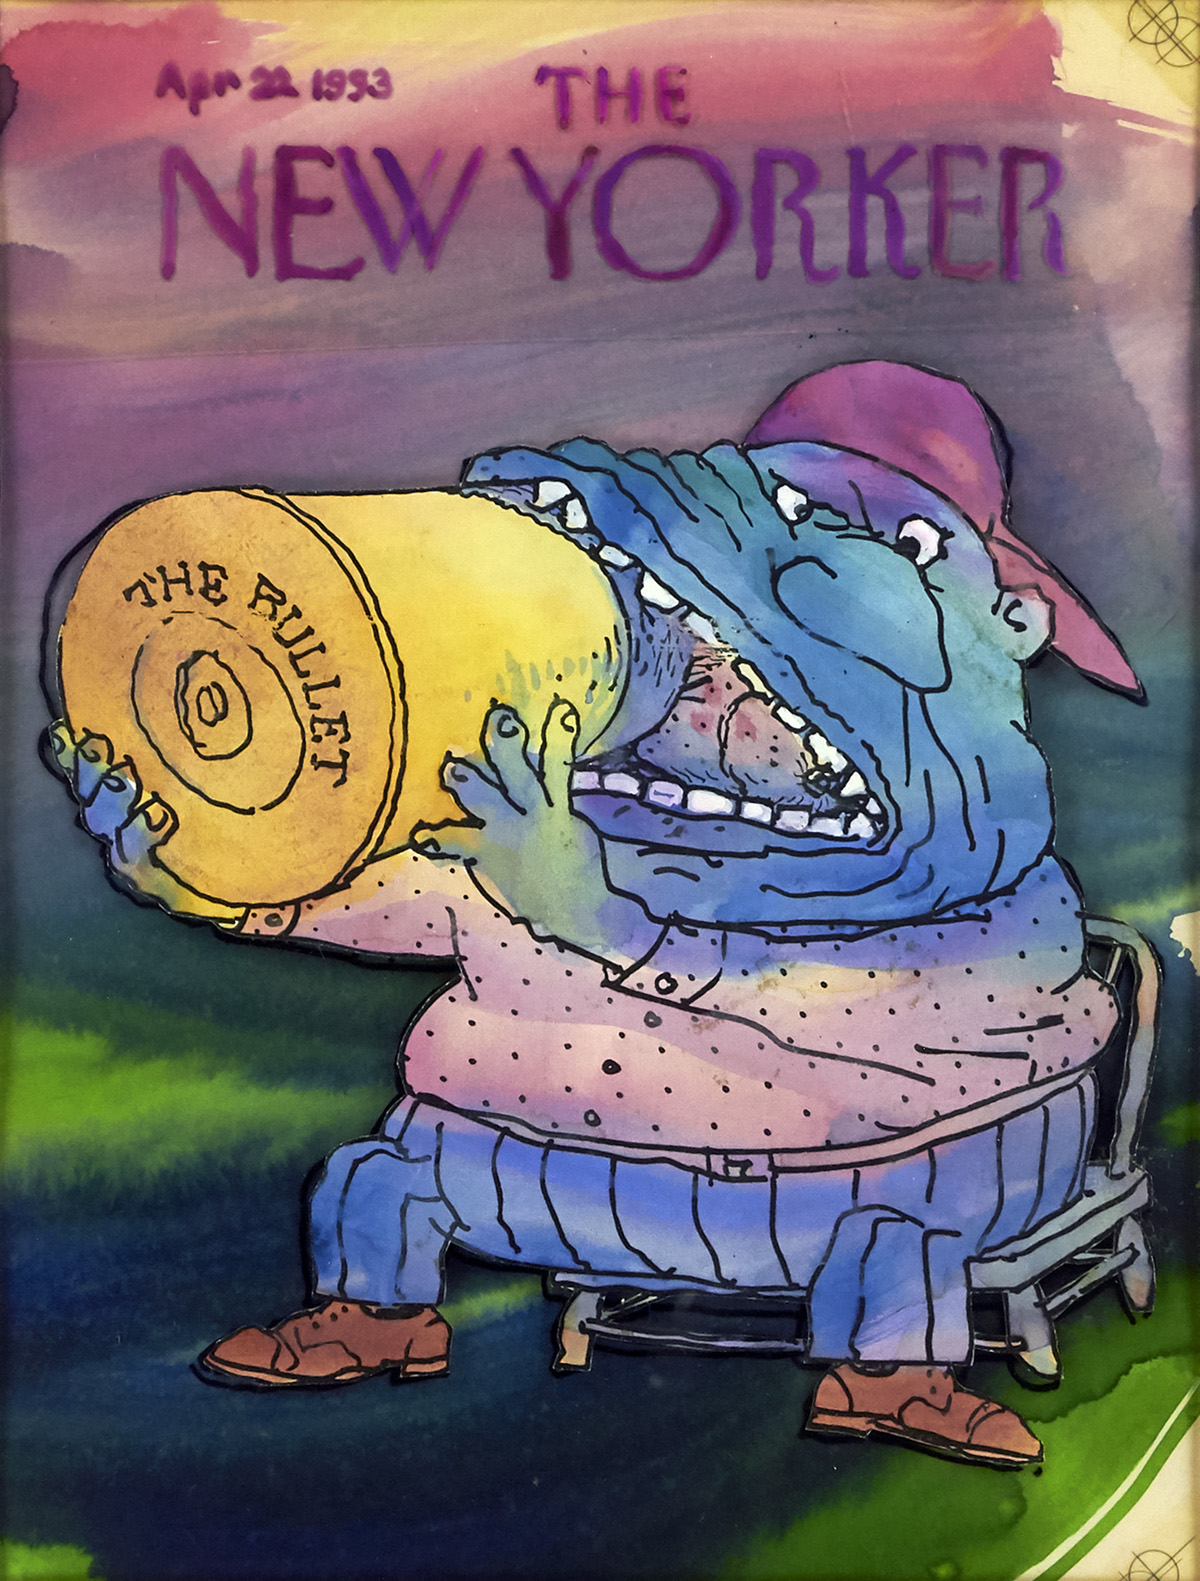 GEORGE-BOOTH-Bite-the-Bullet-[NEW-YORKER--COVER-ART]